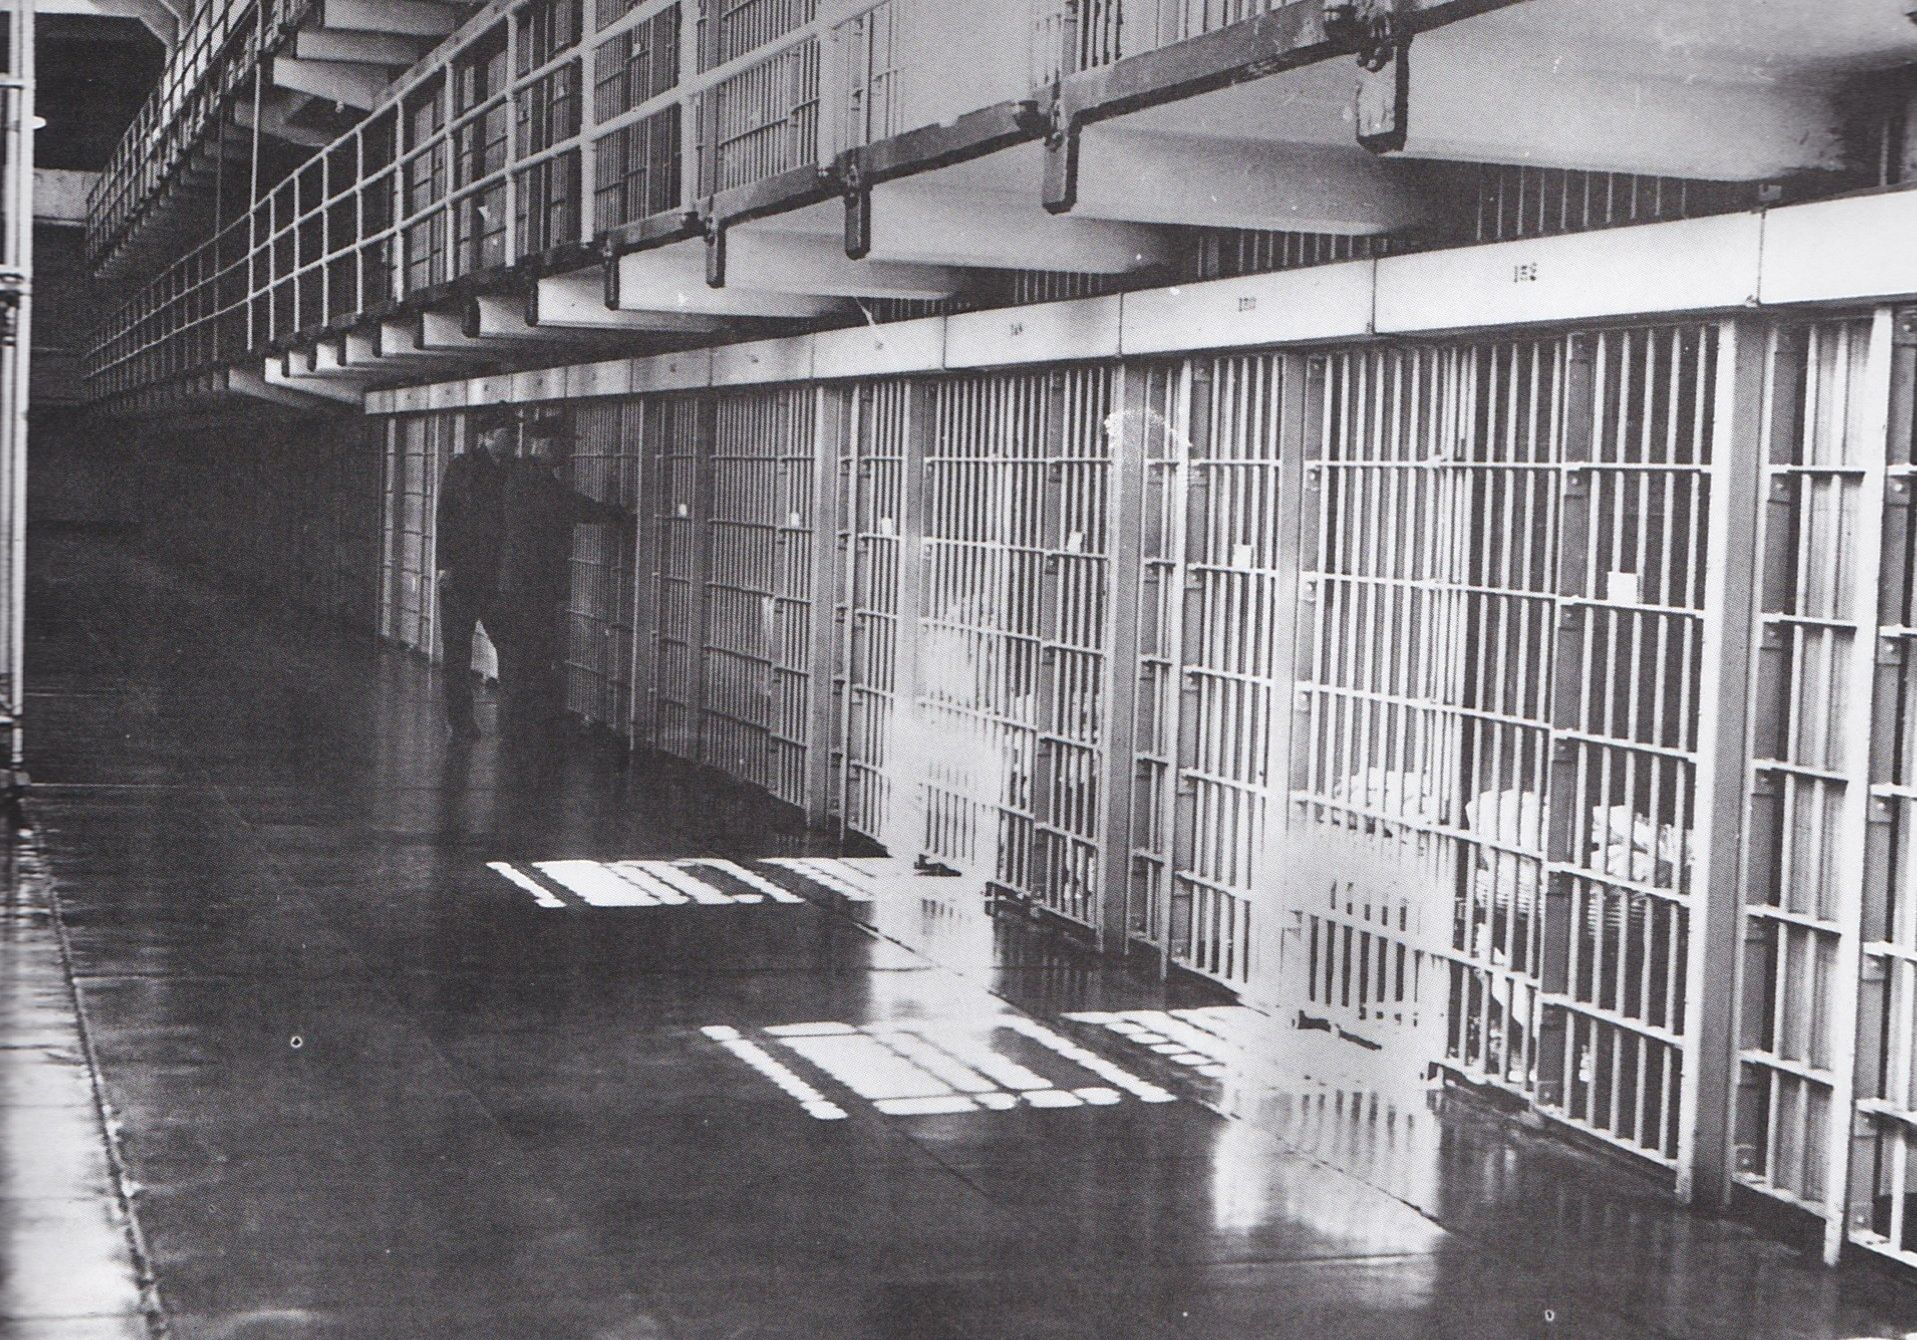 Unidentified Guards In The Main Cellblock Of Alcatraz Federal